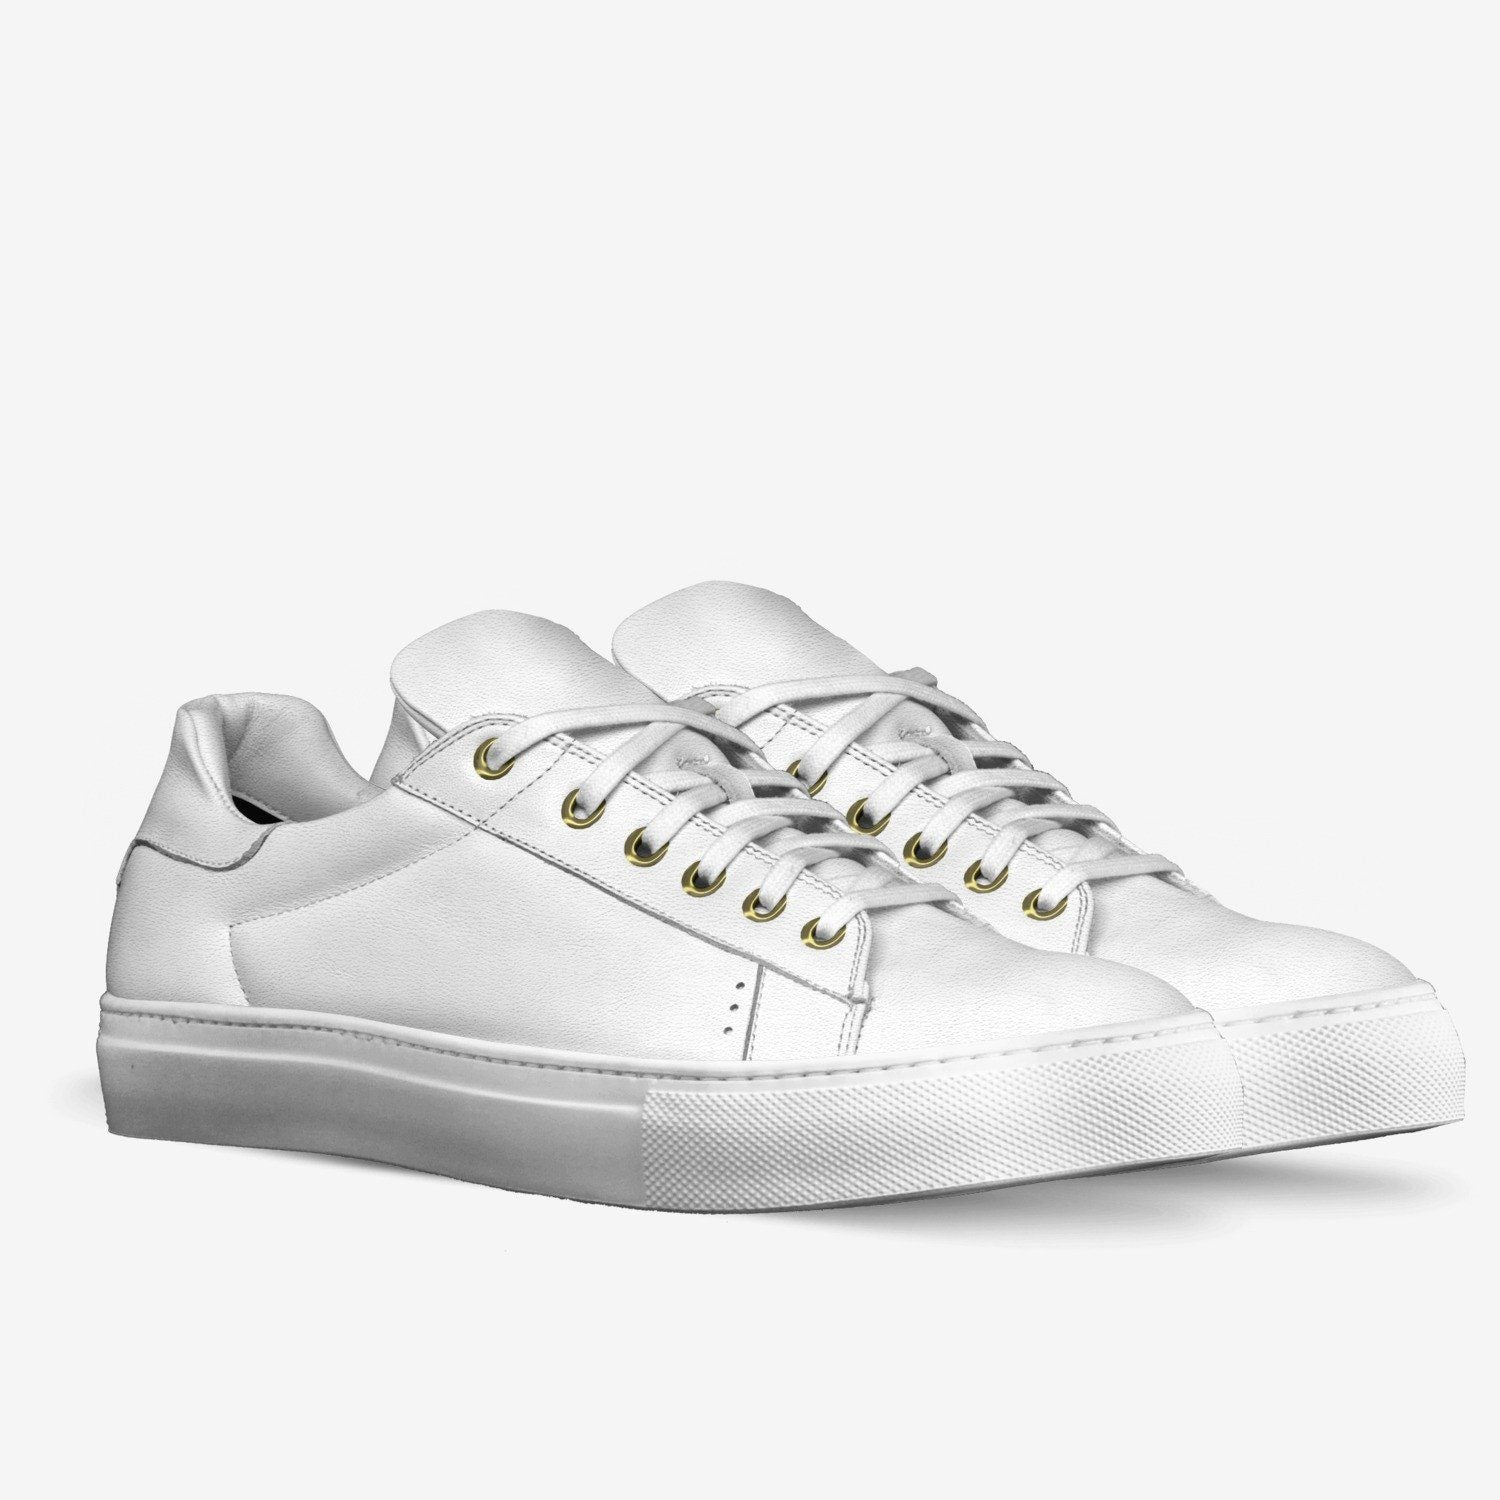 Poor Little Rich Boy Lorenzo Leather Sneakers in Milk White - Poor Little Rich Boy Men's Shoes - Plrbclothing.com